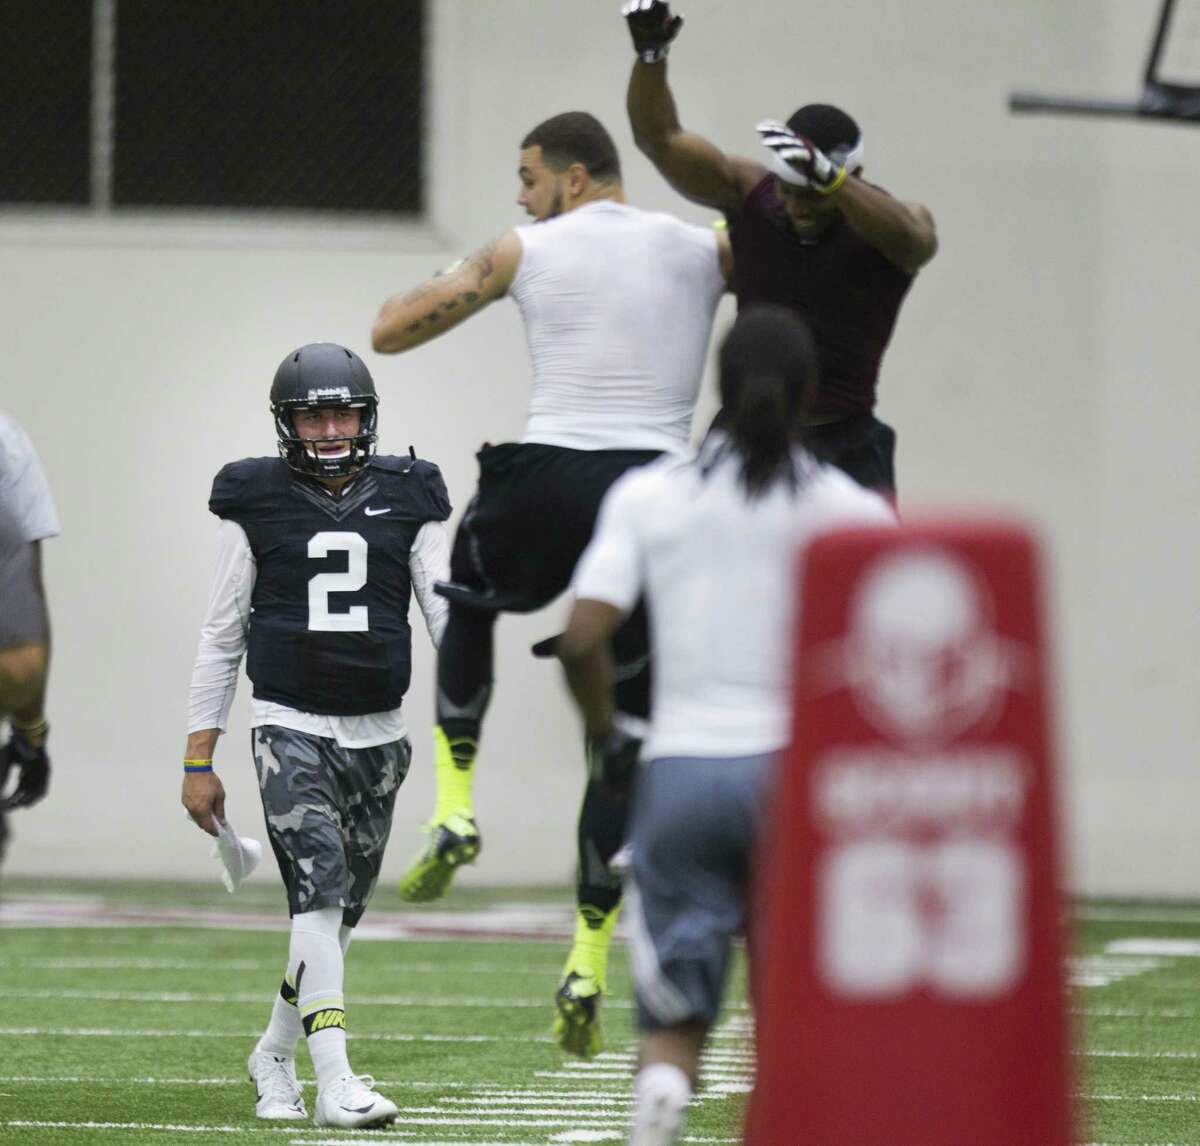 Ex-A&M QB Johnny Manziel (2) walks off the field as WR Mike Evans (center) and another player celebrate. New Texans coach Bill O'Brien was among those attending the Aggies' pro day.